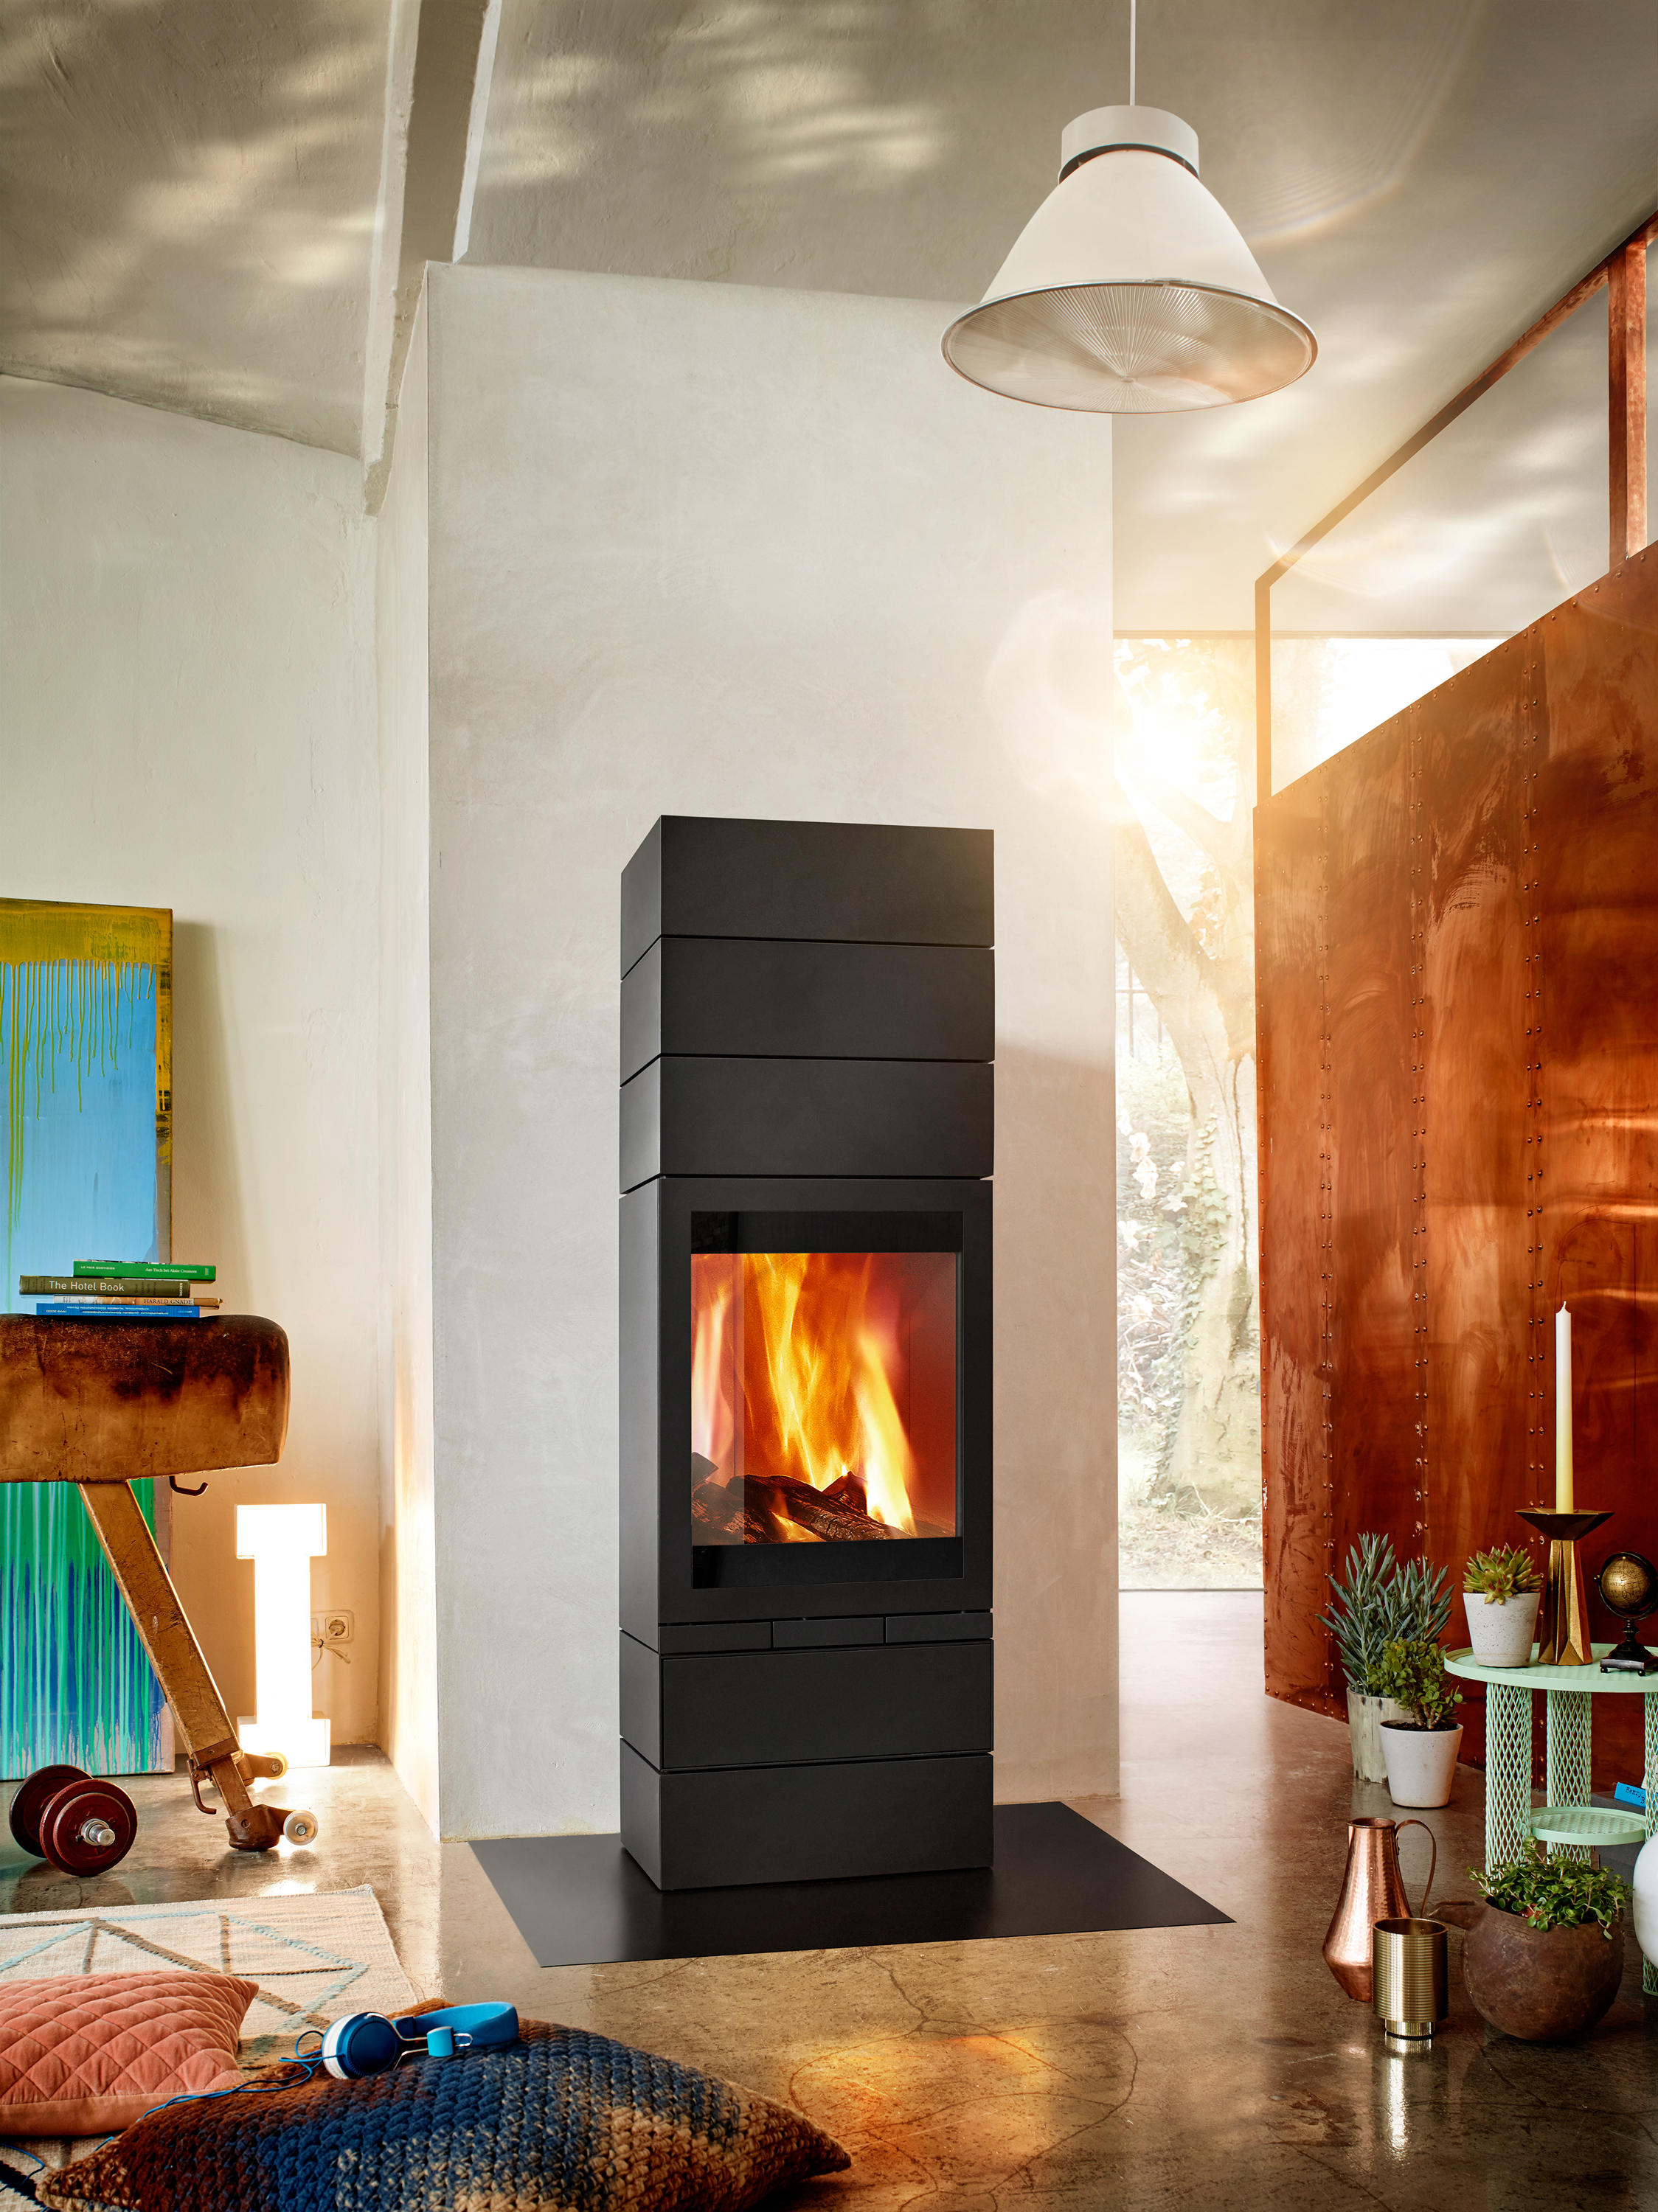 Skantherm Elements Elements Rund - Stoves From Skantherm | Architonic